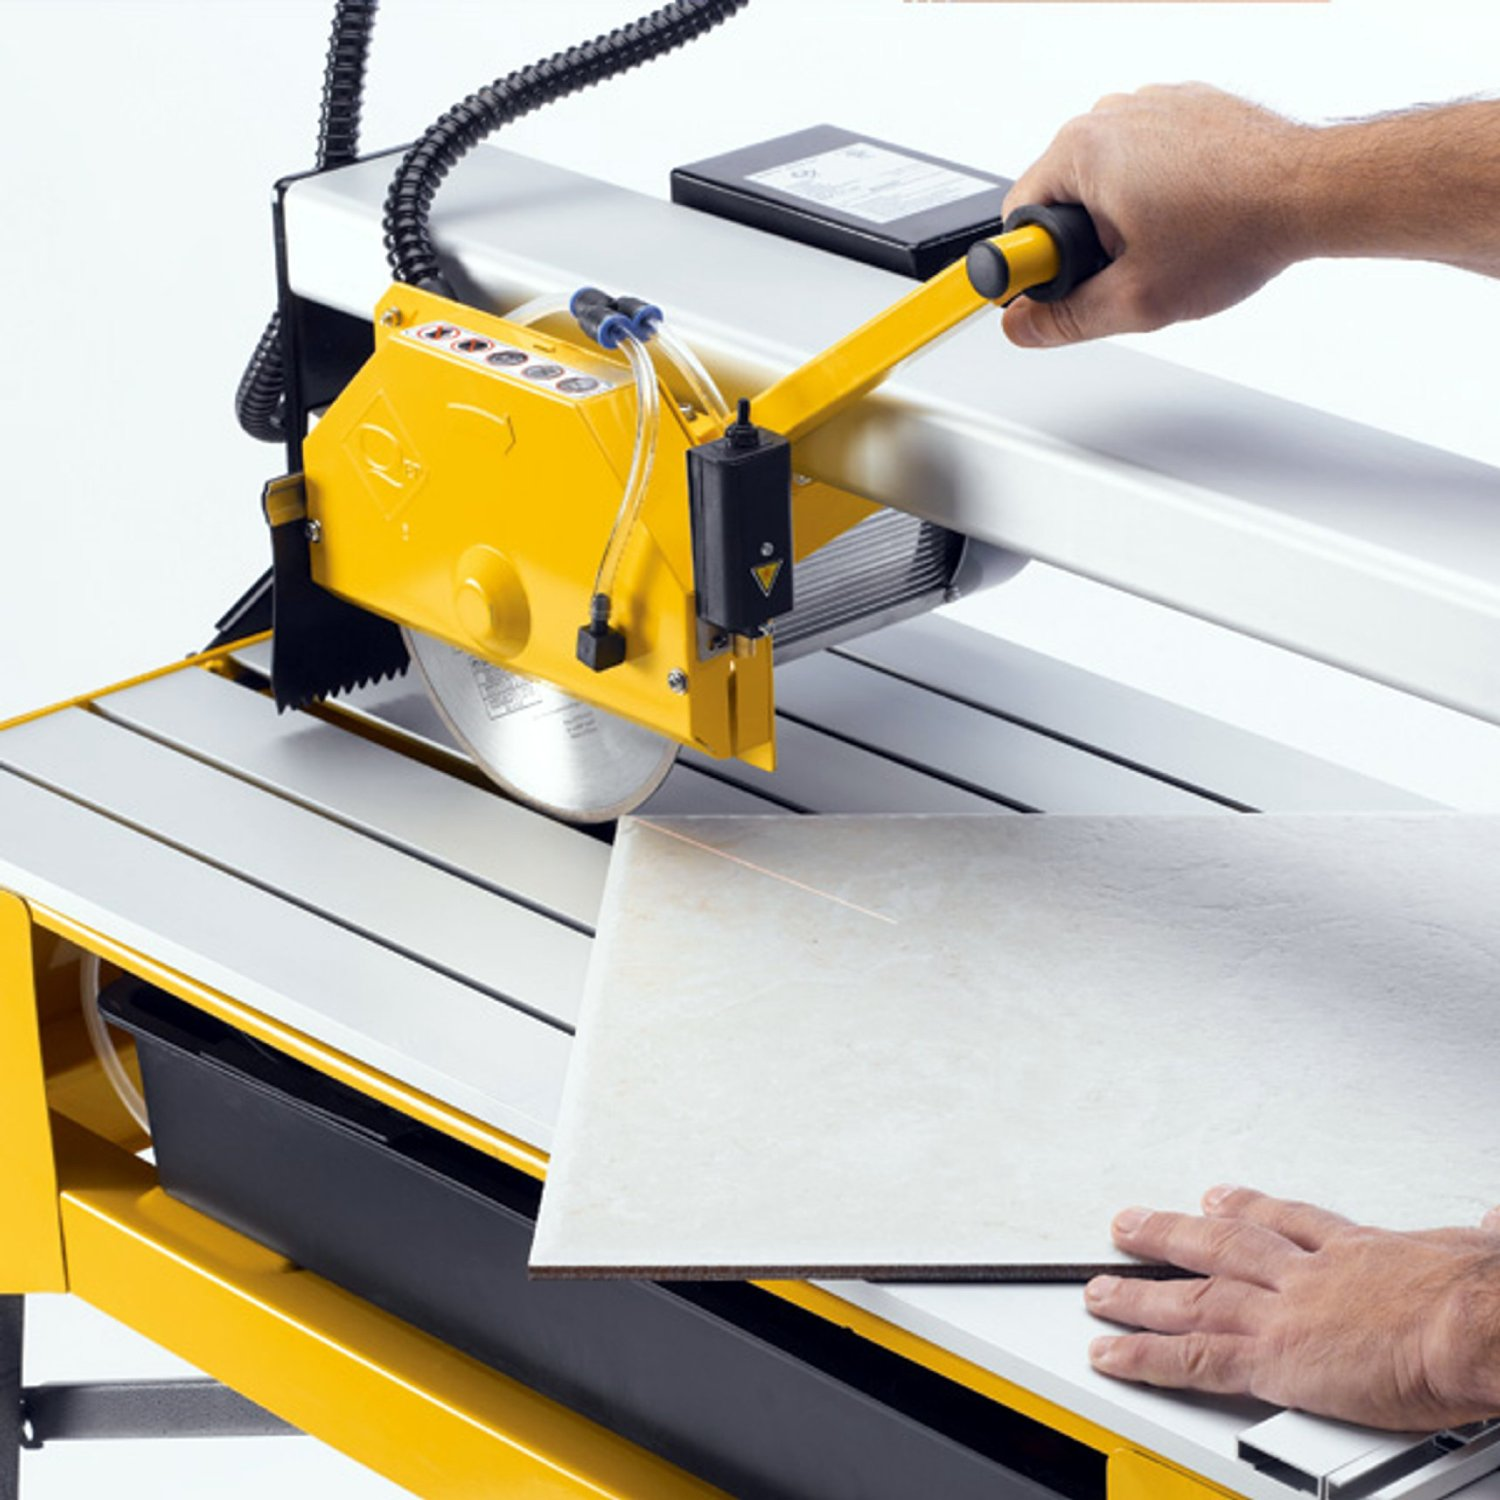 Tile saw the tile home guide 4 always wear a niosh national institute for occupational safety and health approved mask rated type n 95 or higher when cutting tile when cutting tile dailygadgetfo Images